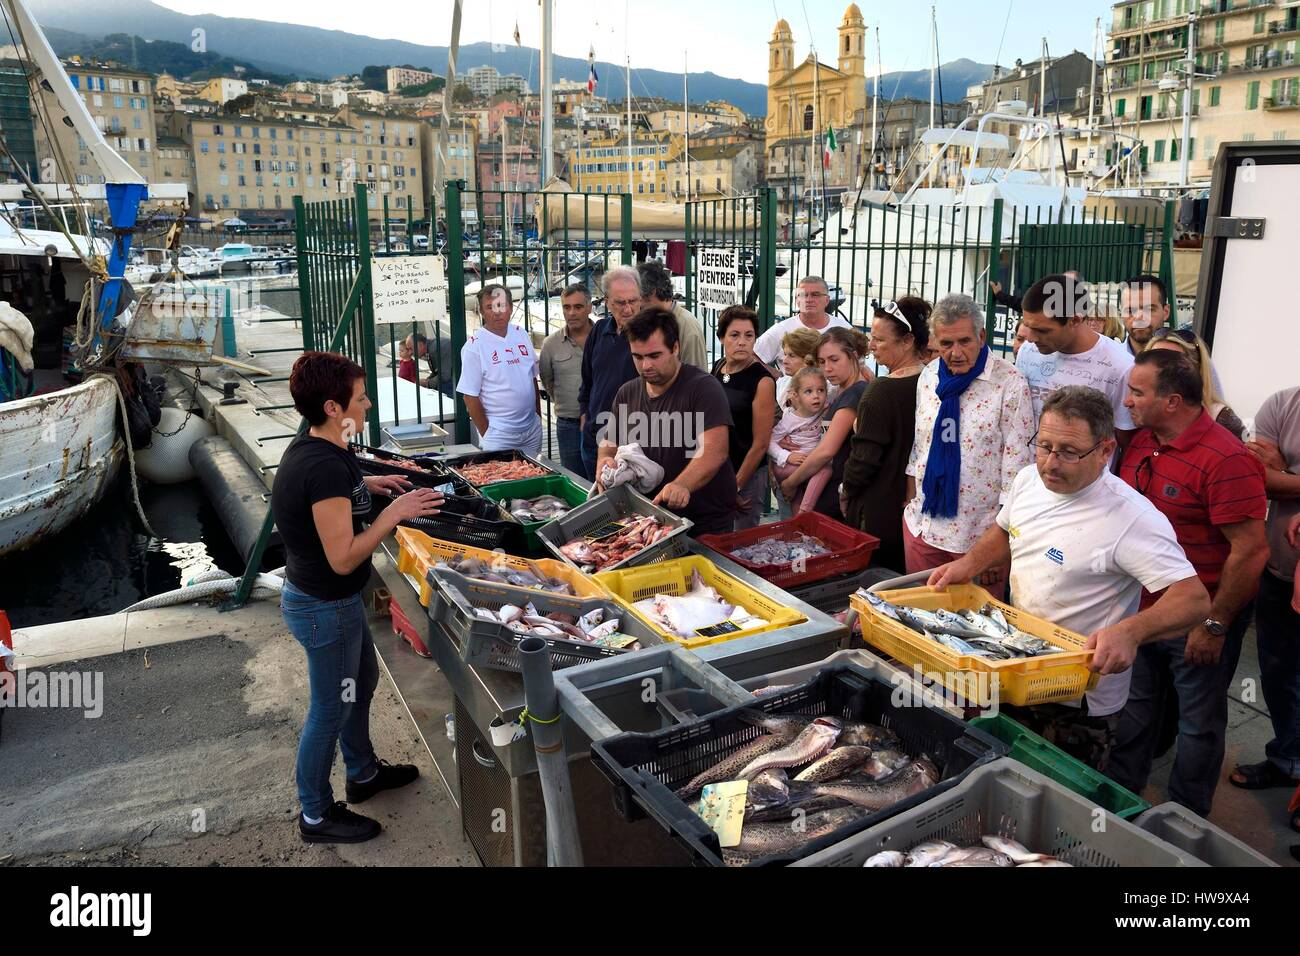 Cafe in the vieux port terra vecchia bastia corsica france stock - France Haute Corse Bastia Terra Vecchia District The Harbour Overlooked By St Jean Baptiste Church Direct Fish Selling On The Dock After The Retu